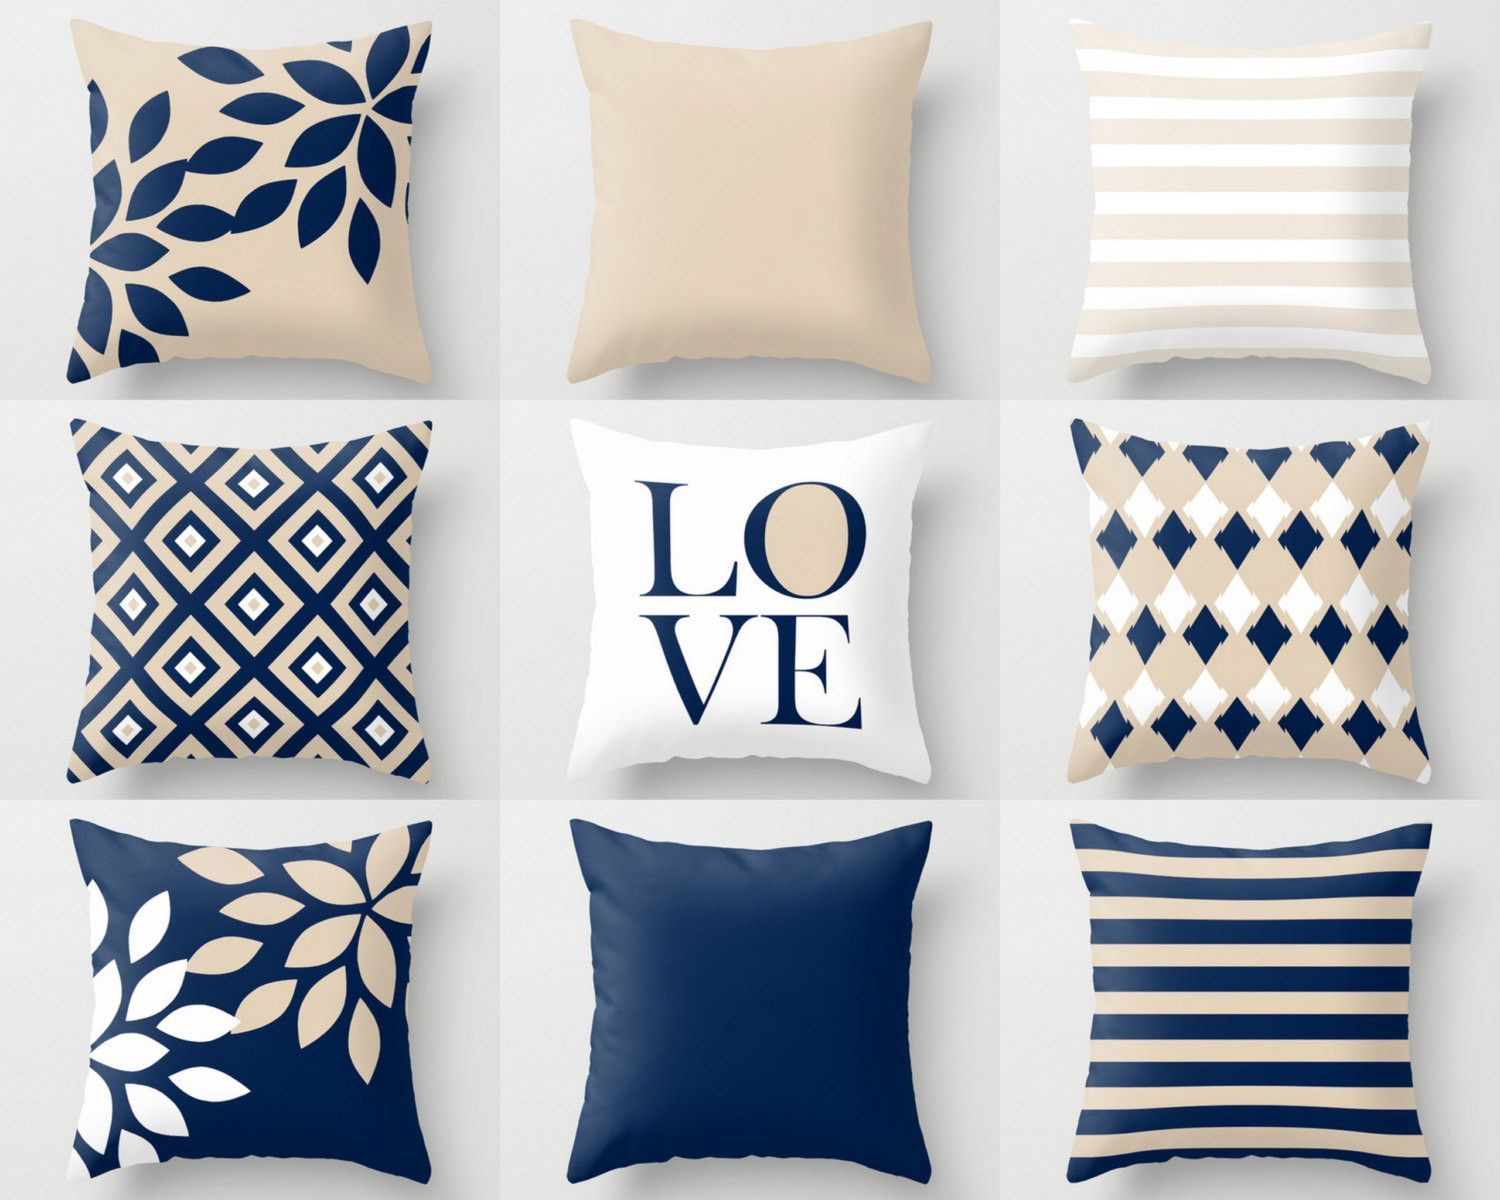 Navy Throw Pillows Pillow Covers Cushion Cover Home Decor Mix And Match Navy Beige Whi Navy Throw Pillows Throw Pillow Cover Navy White Decorative Pillows